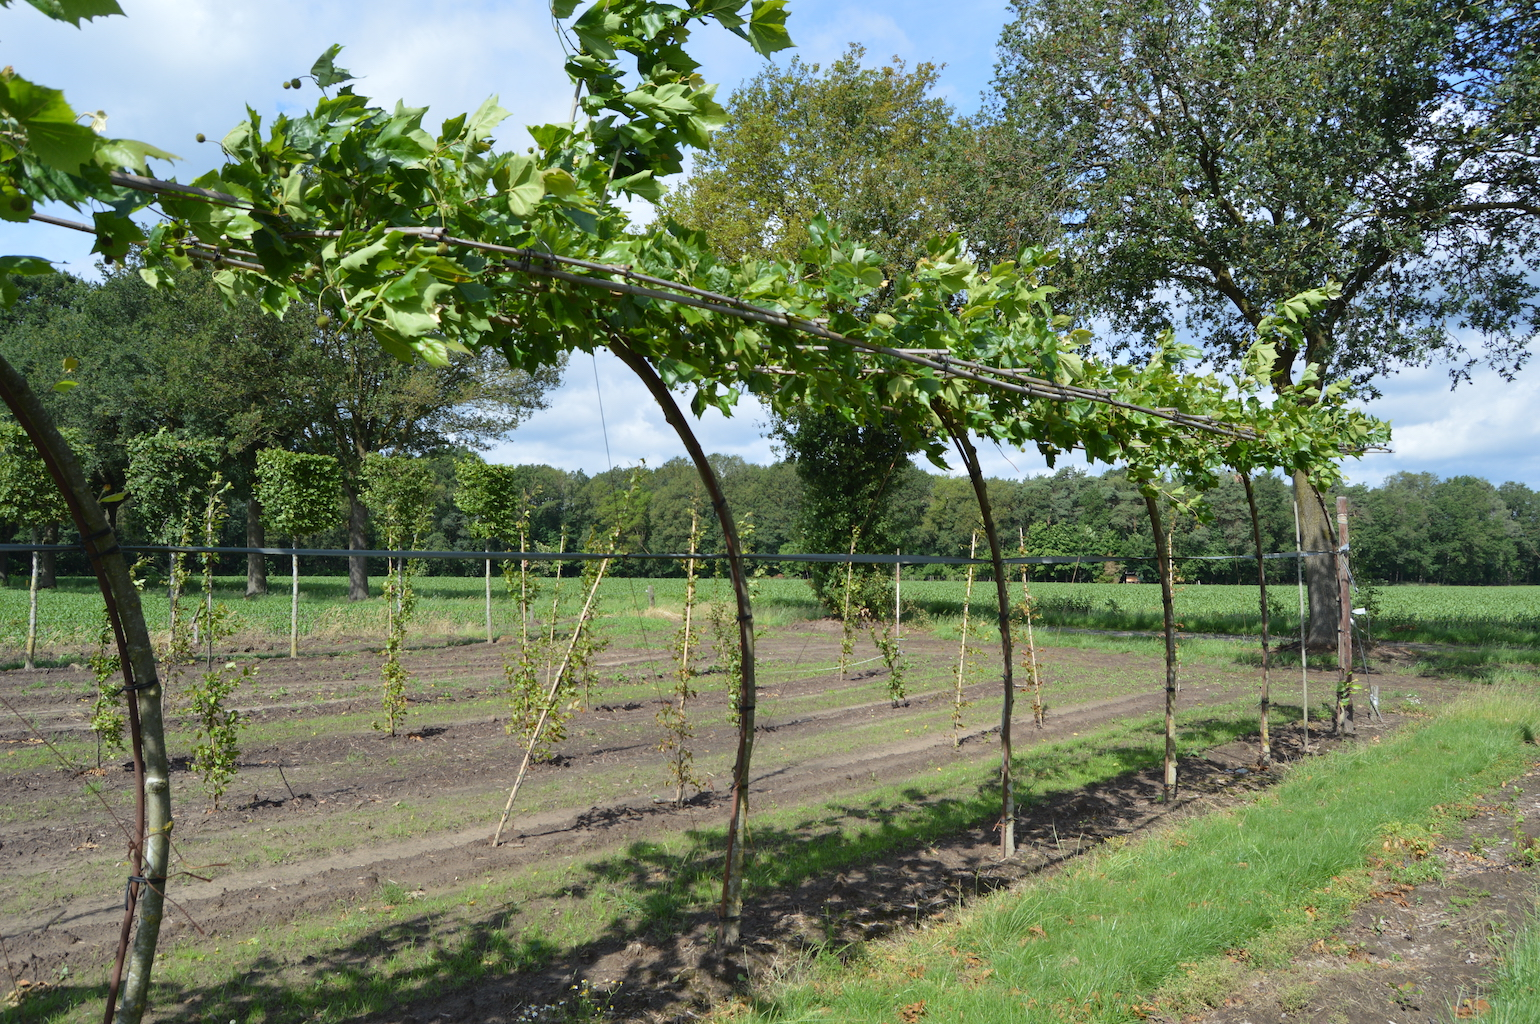 Platanus x acerifolia (London Plane) roof-form trees with curved stems and offset roof